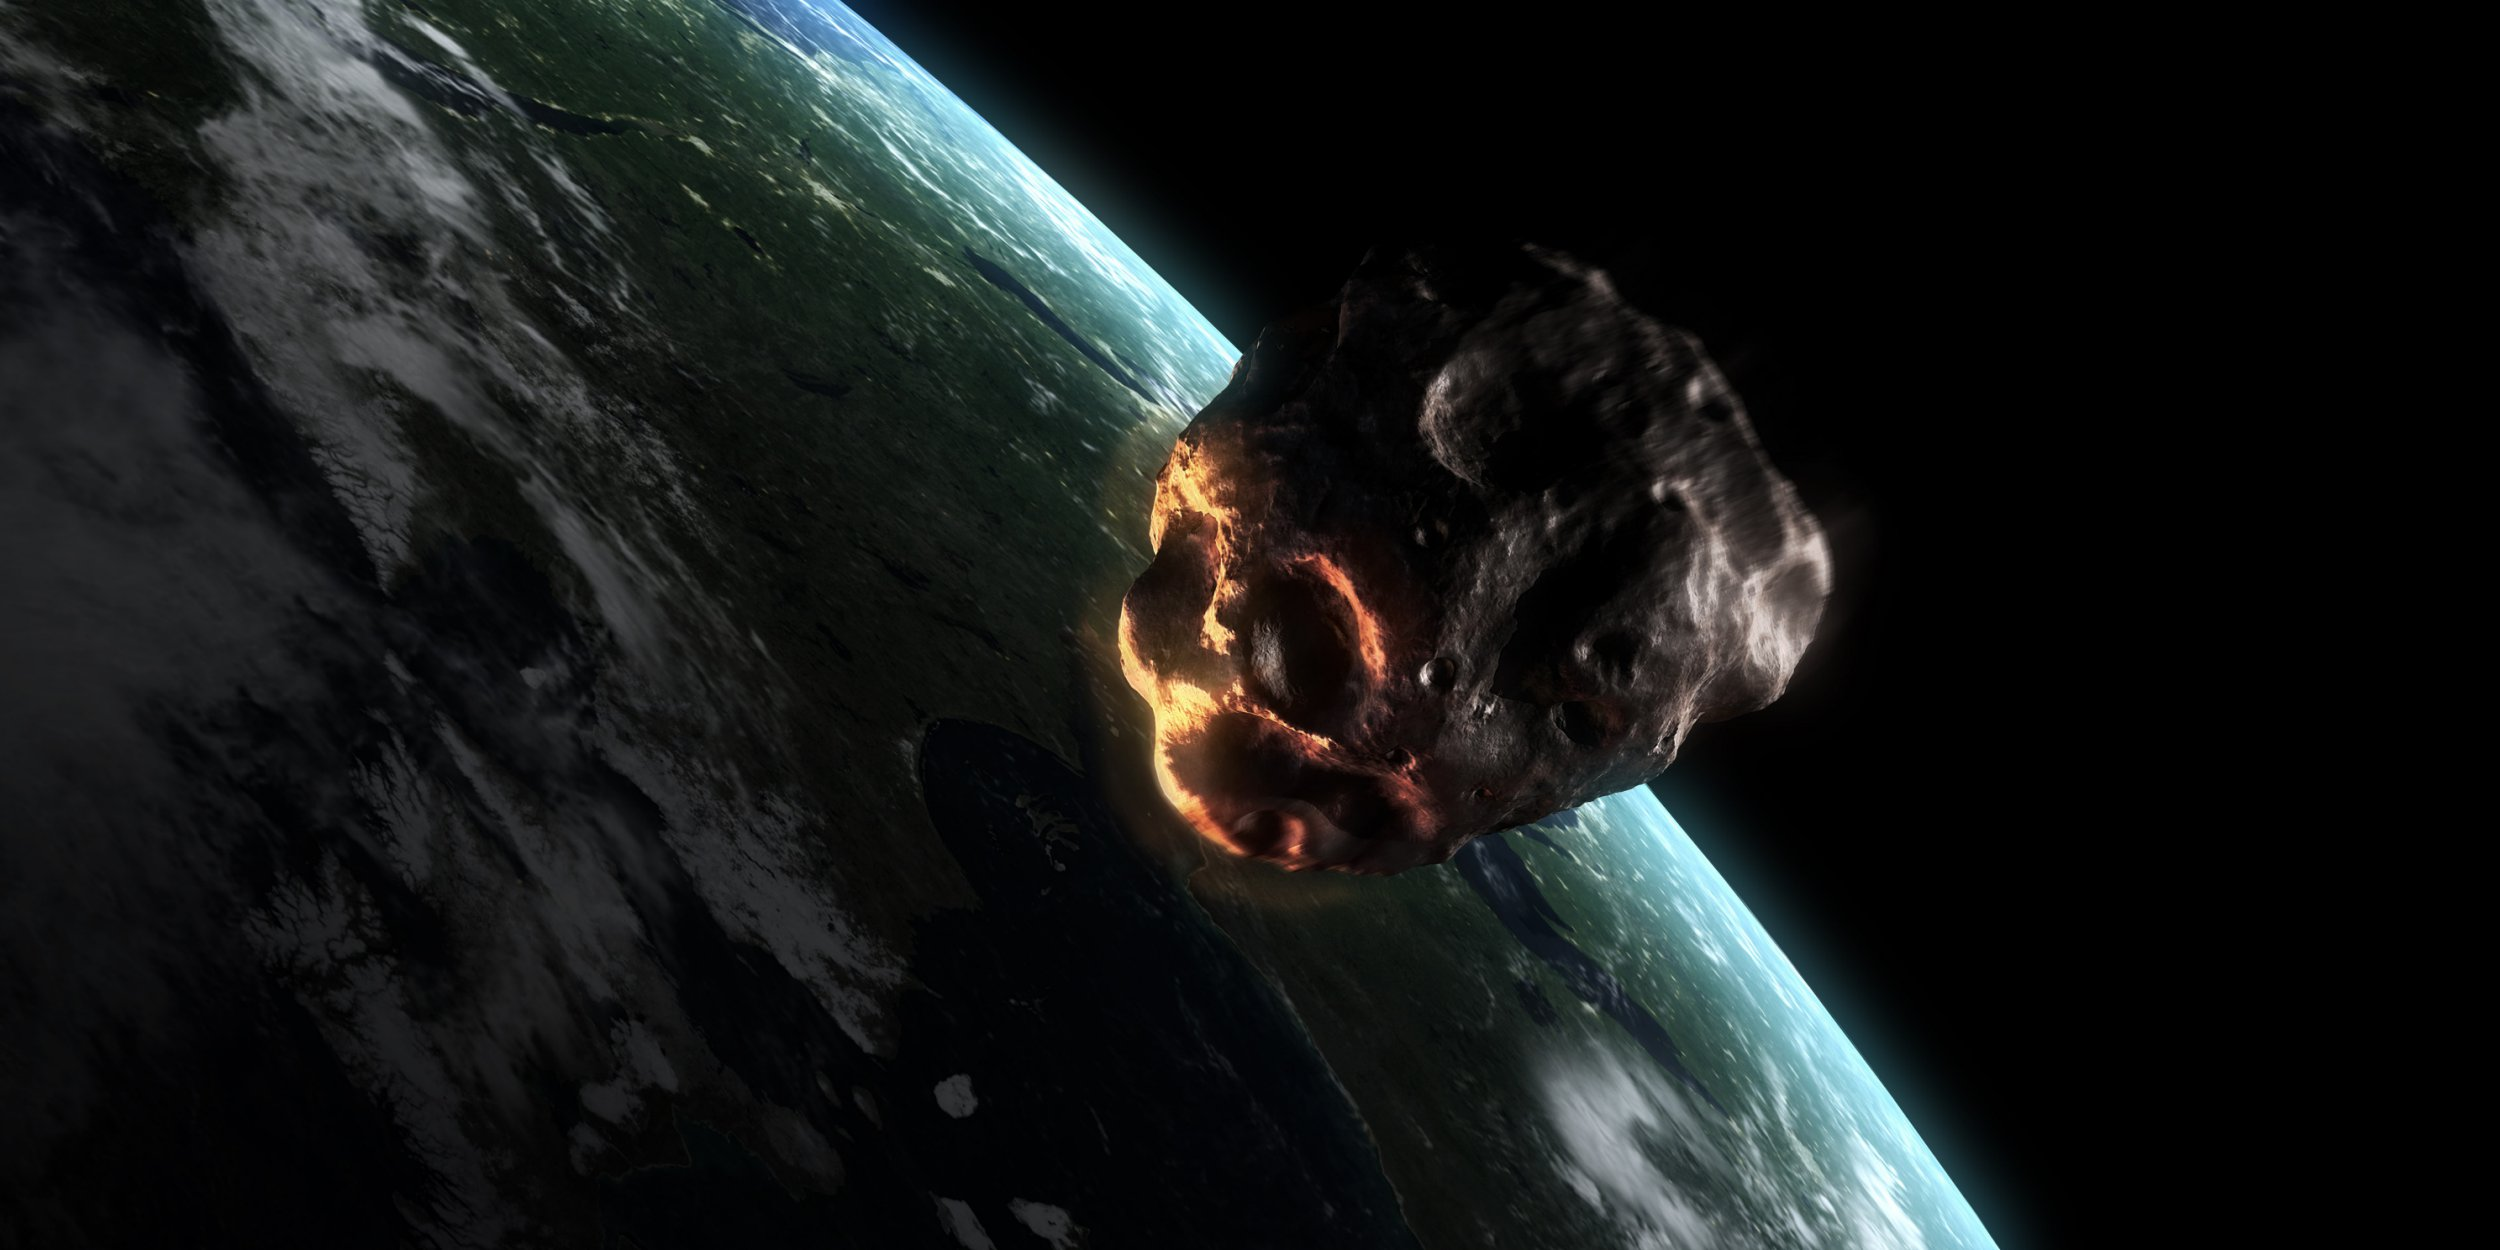 Asteroid to the earth. Computer aesthetics of an asteroid entering the Earth's atmosphere.